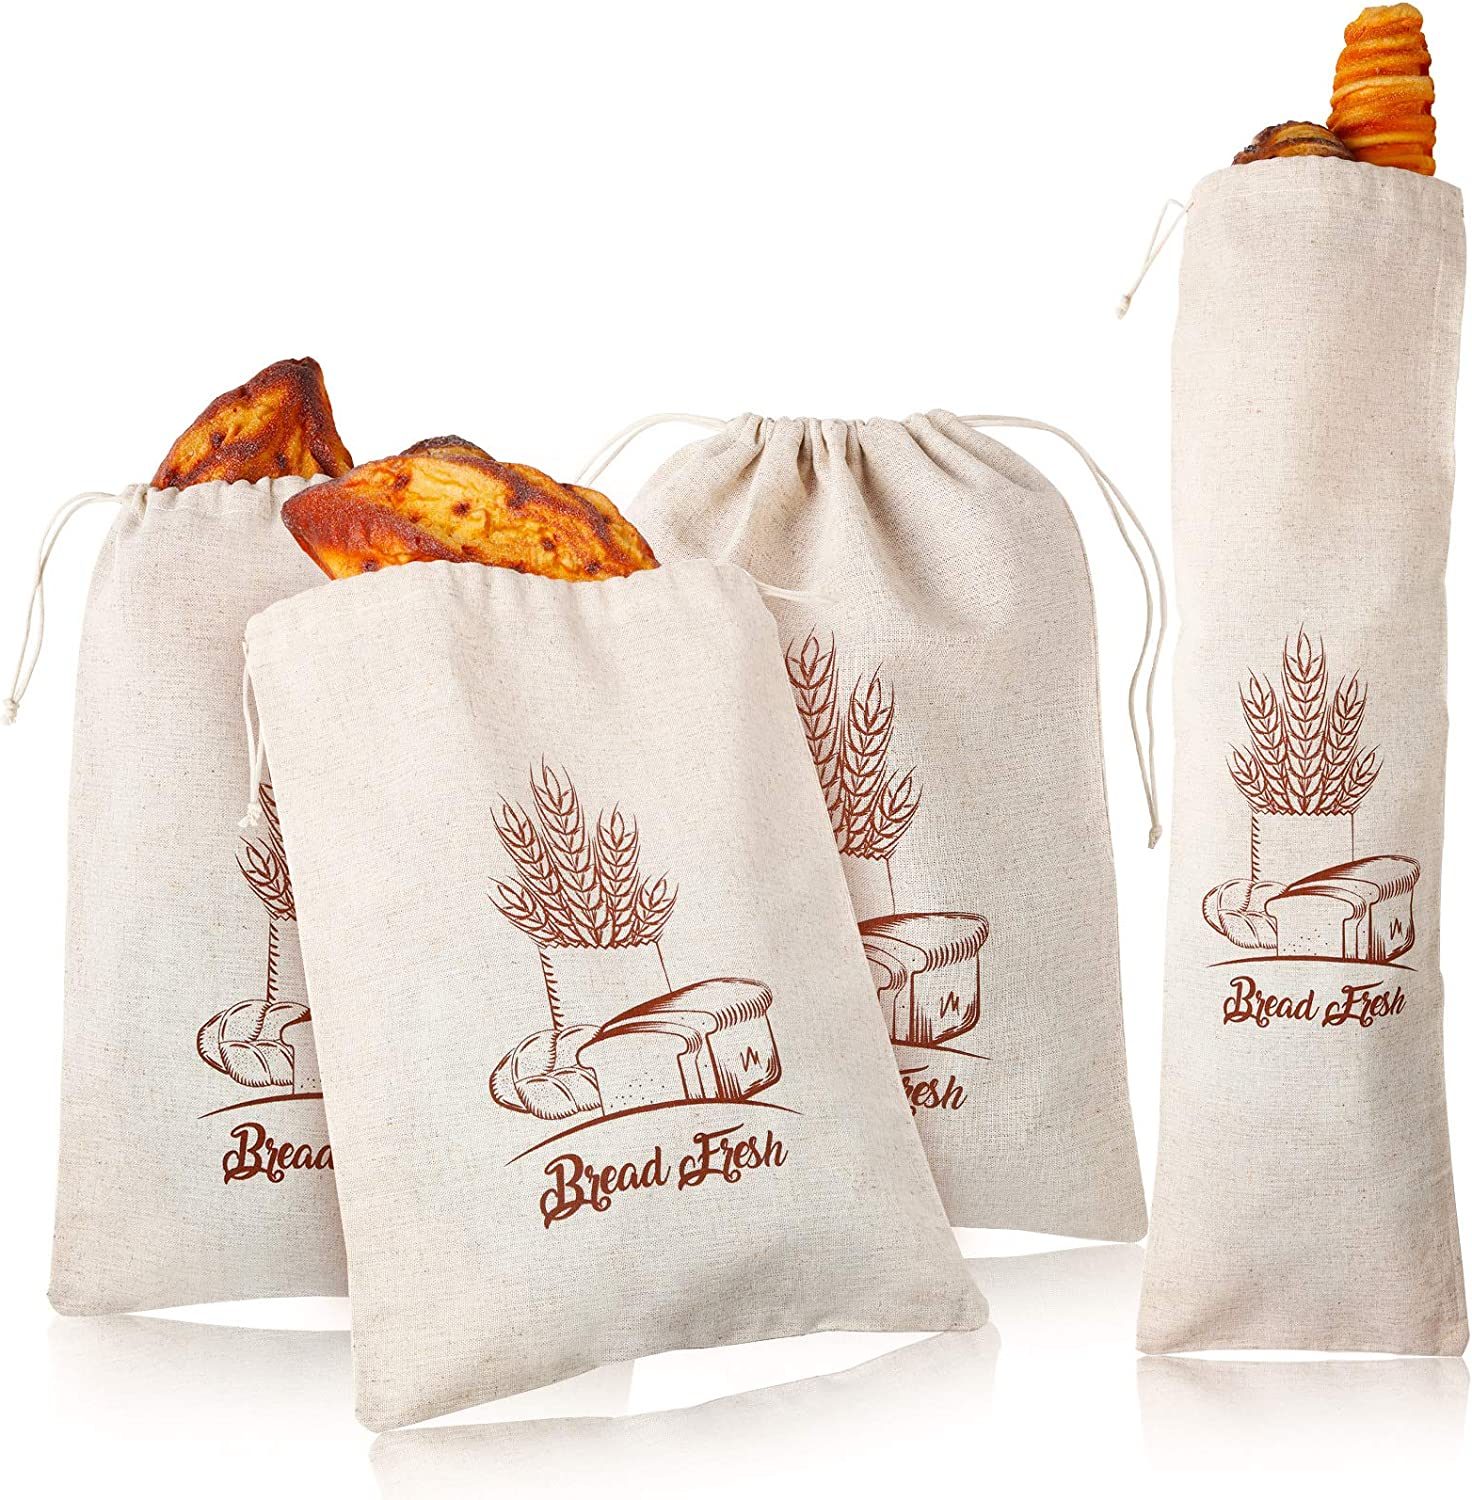 4 Pieces Linen Bread Bags Drawstring Bread Storage Bags Reusable Flax Bag Print Grocery Bags for Food Storage Loaf Homemade Bread Keep, 12 x 16 in and 27 x 8 in